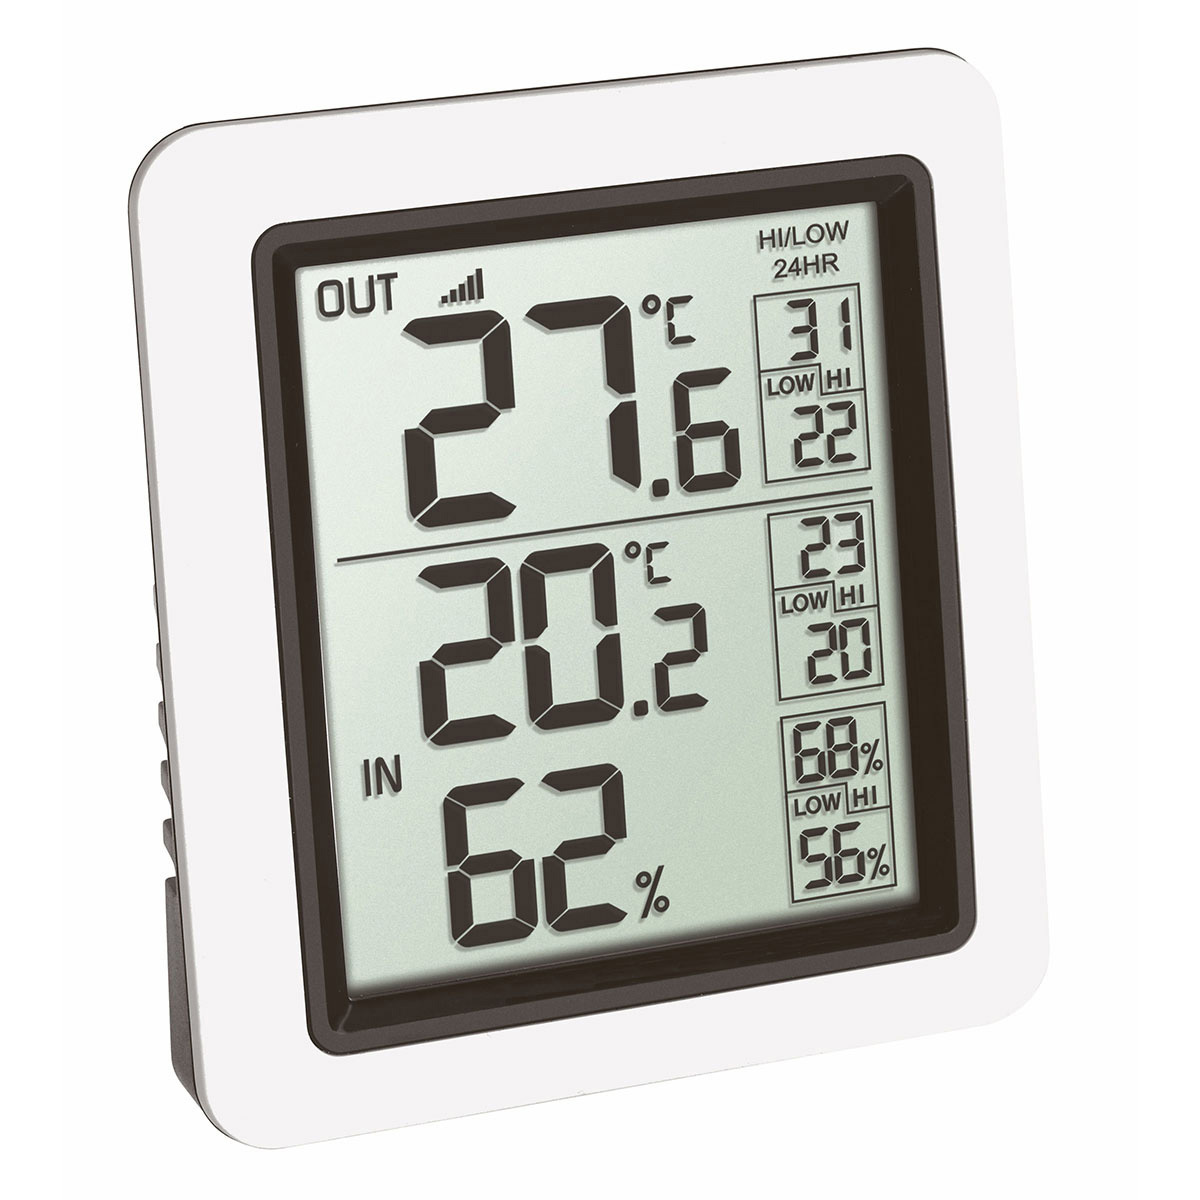 30-3065-02-funk-thermometer-info-1200x1200px.jpg